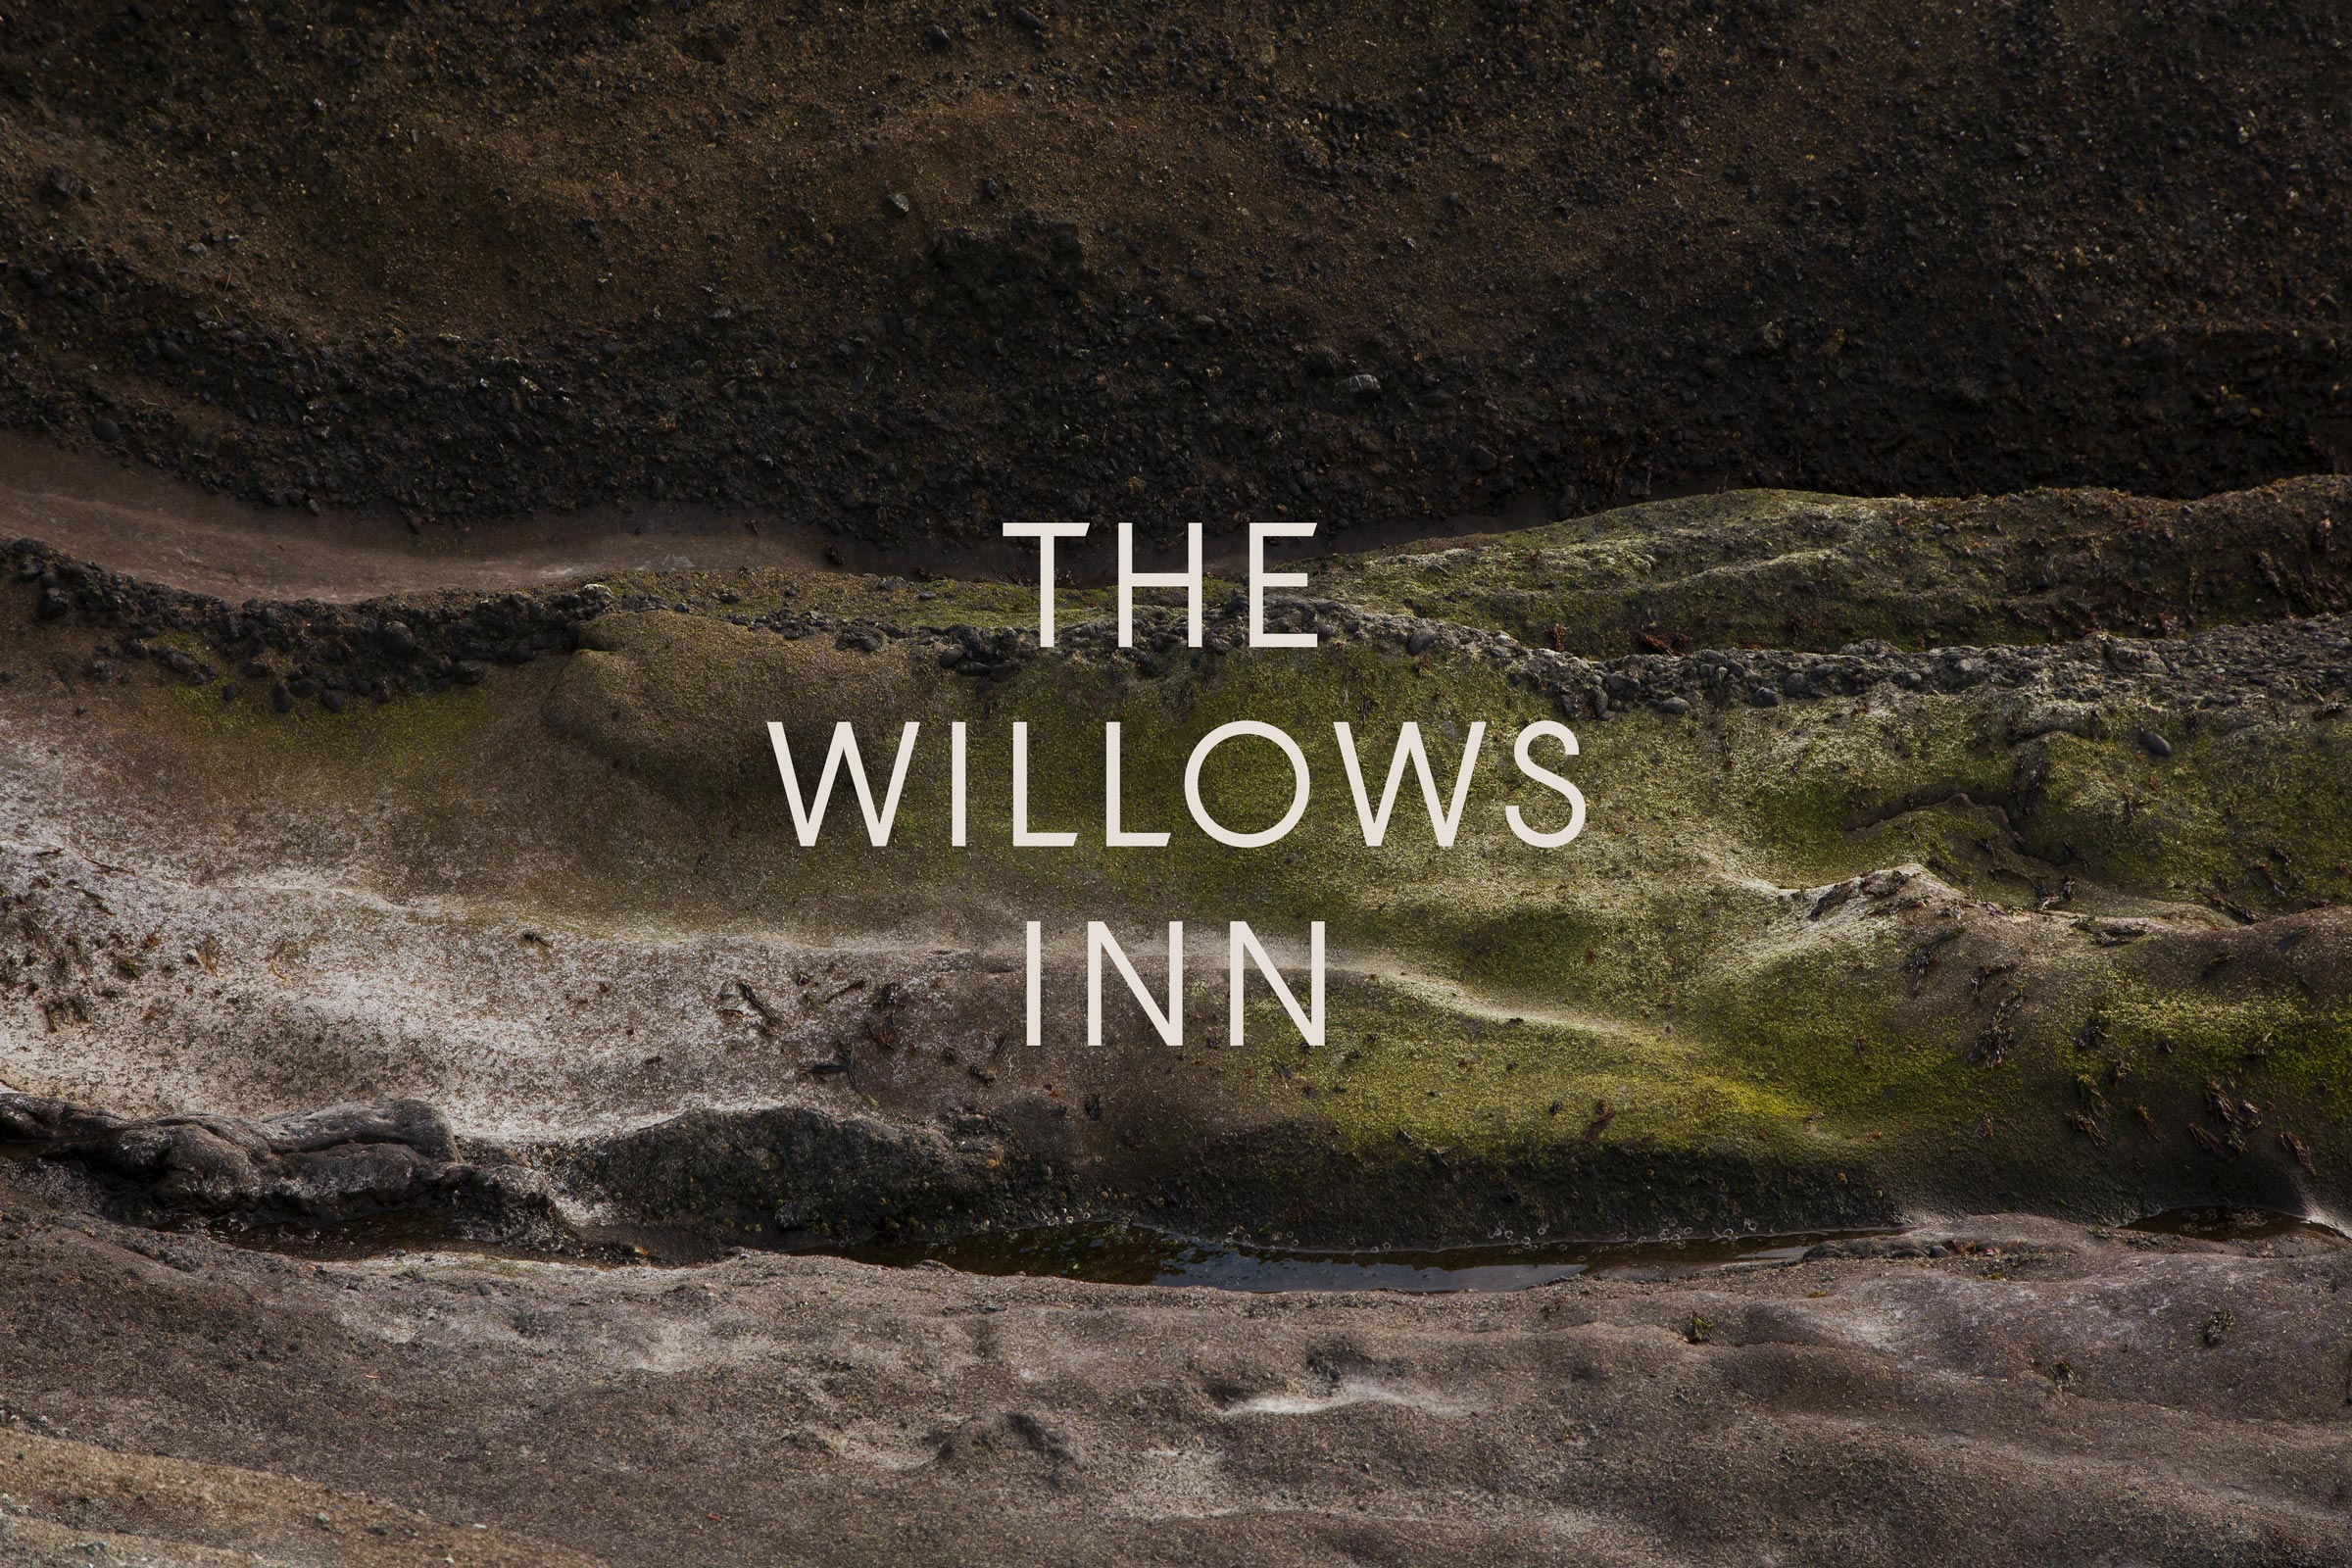 the-willows-inn-wordmark